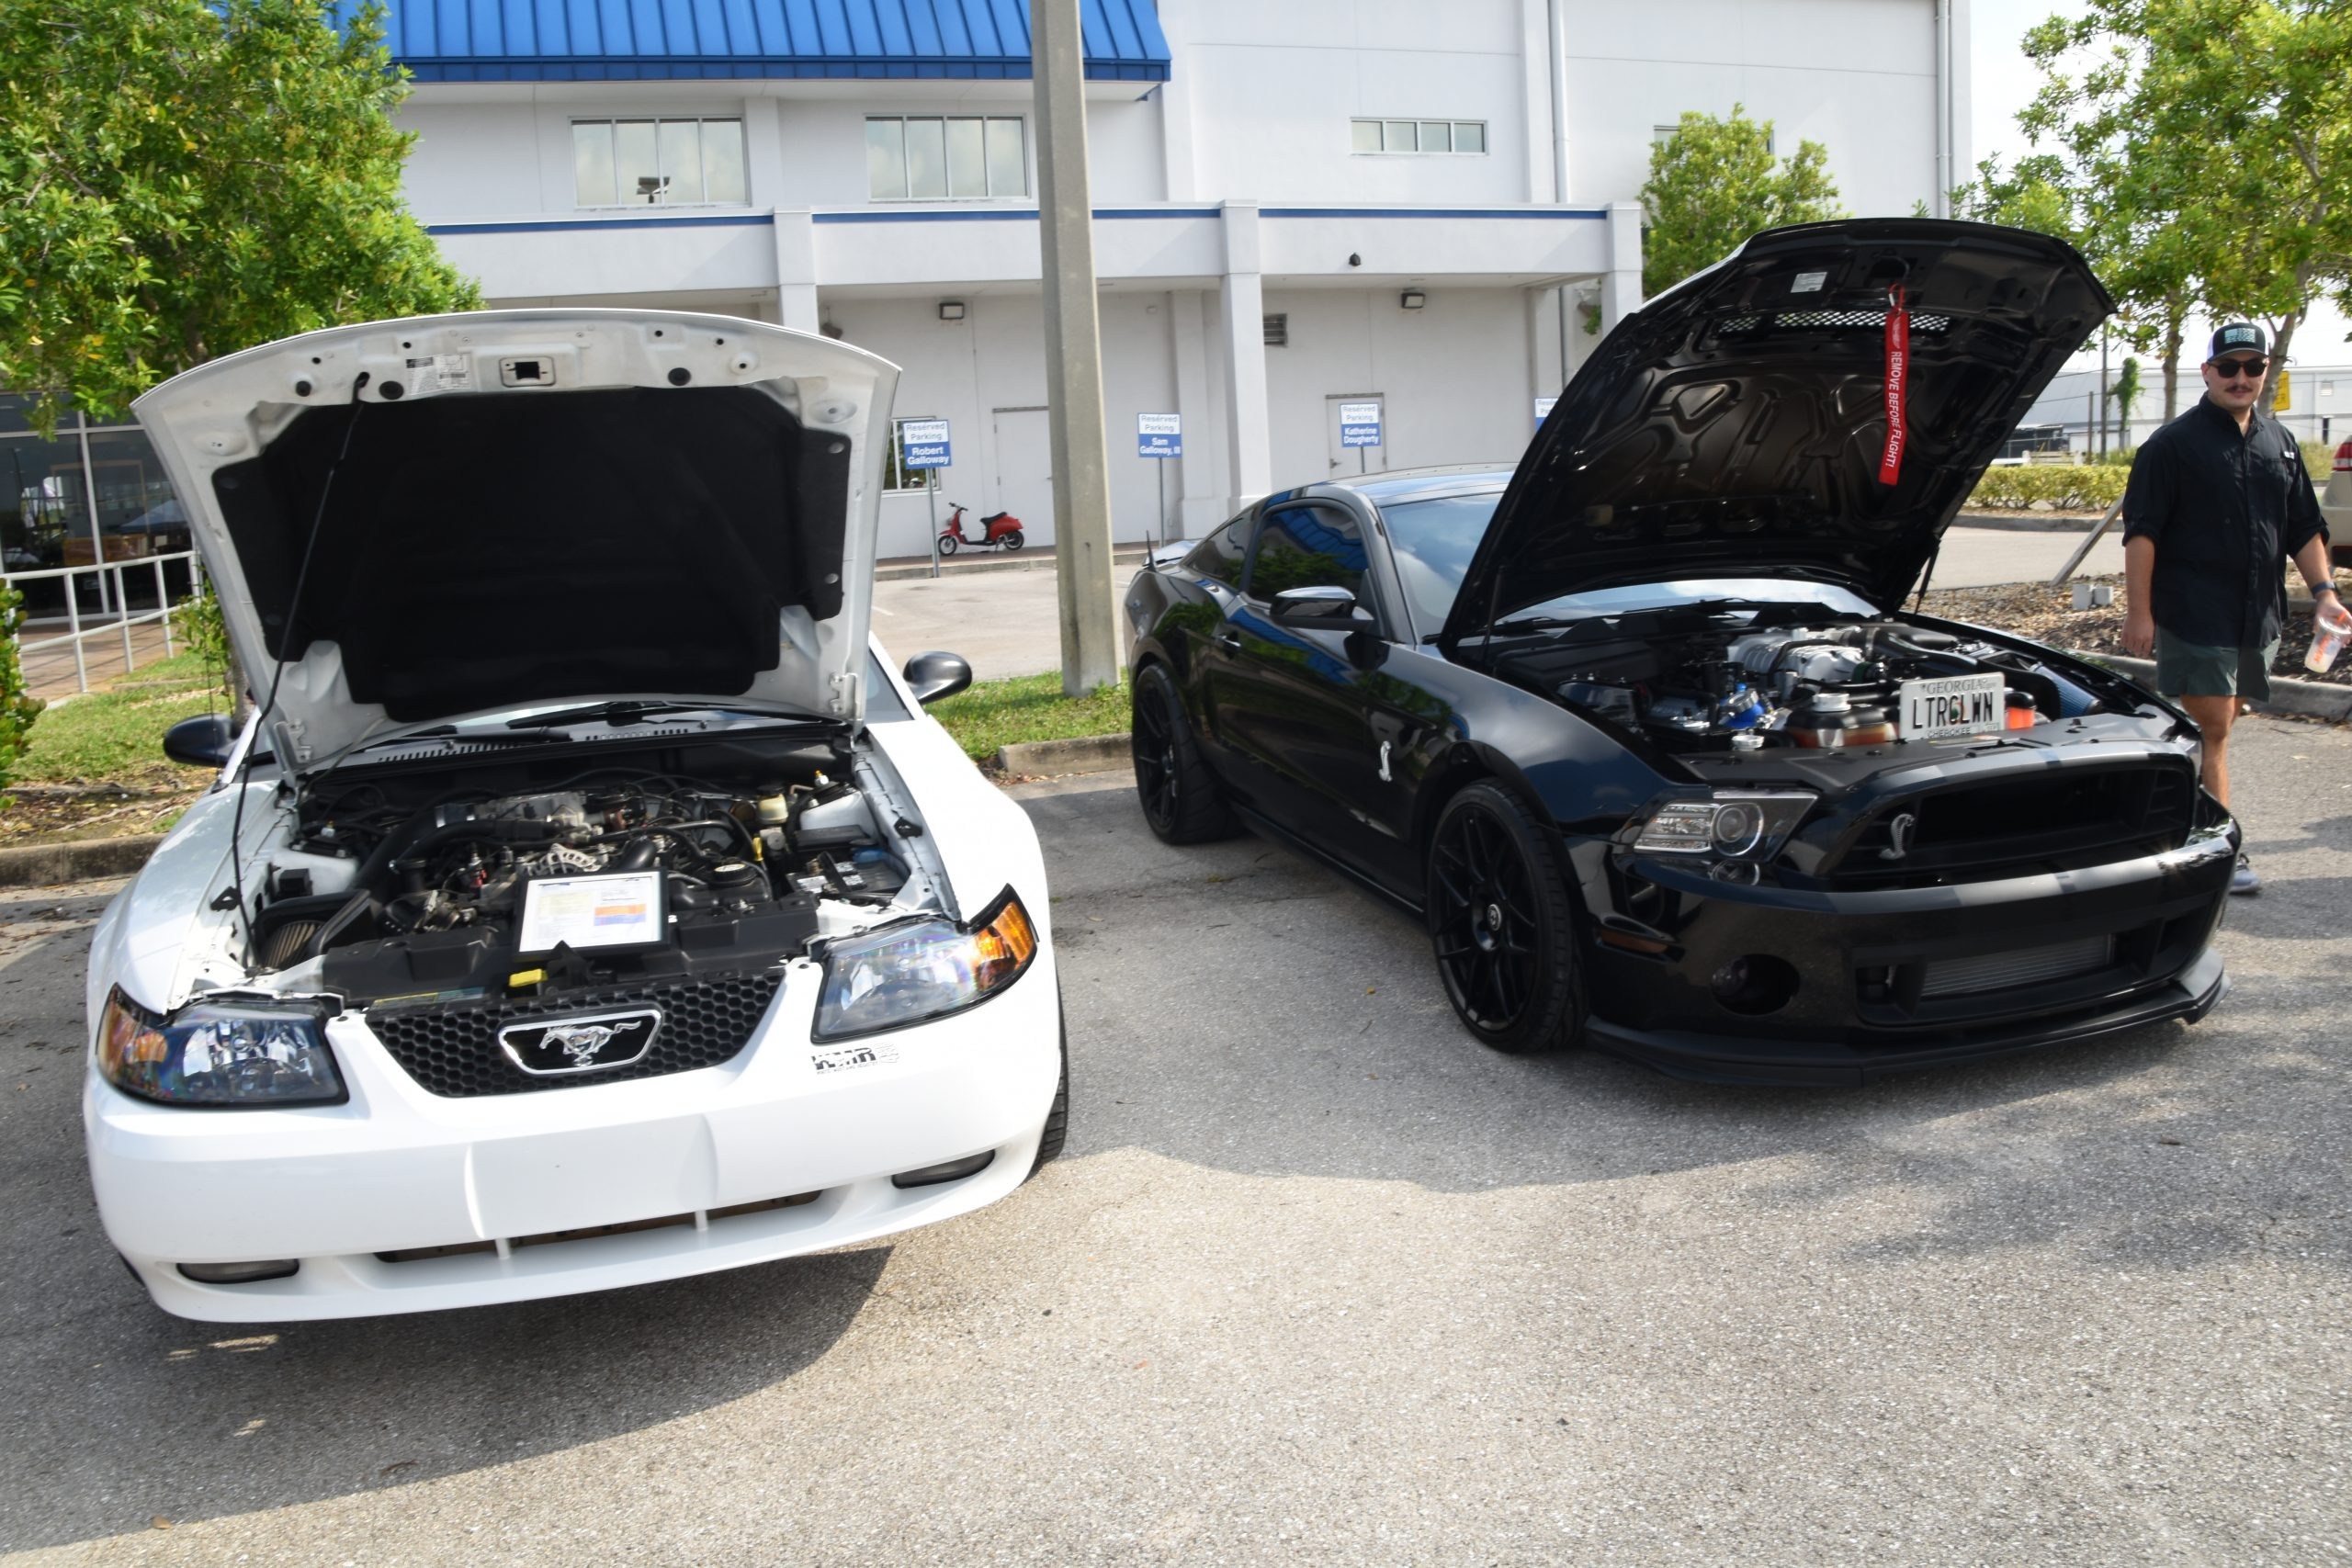 White and black Mustangs with hoods up